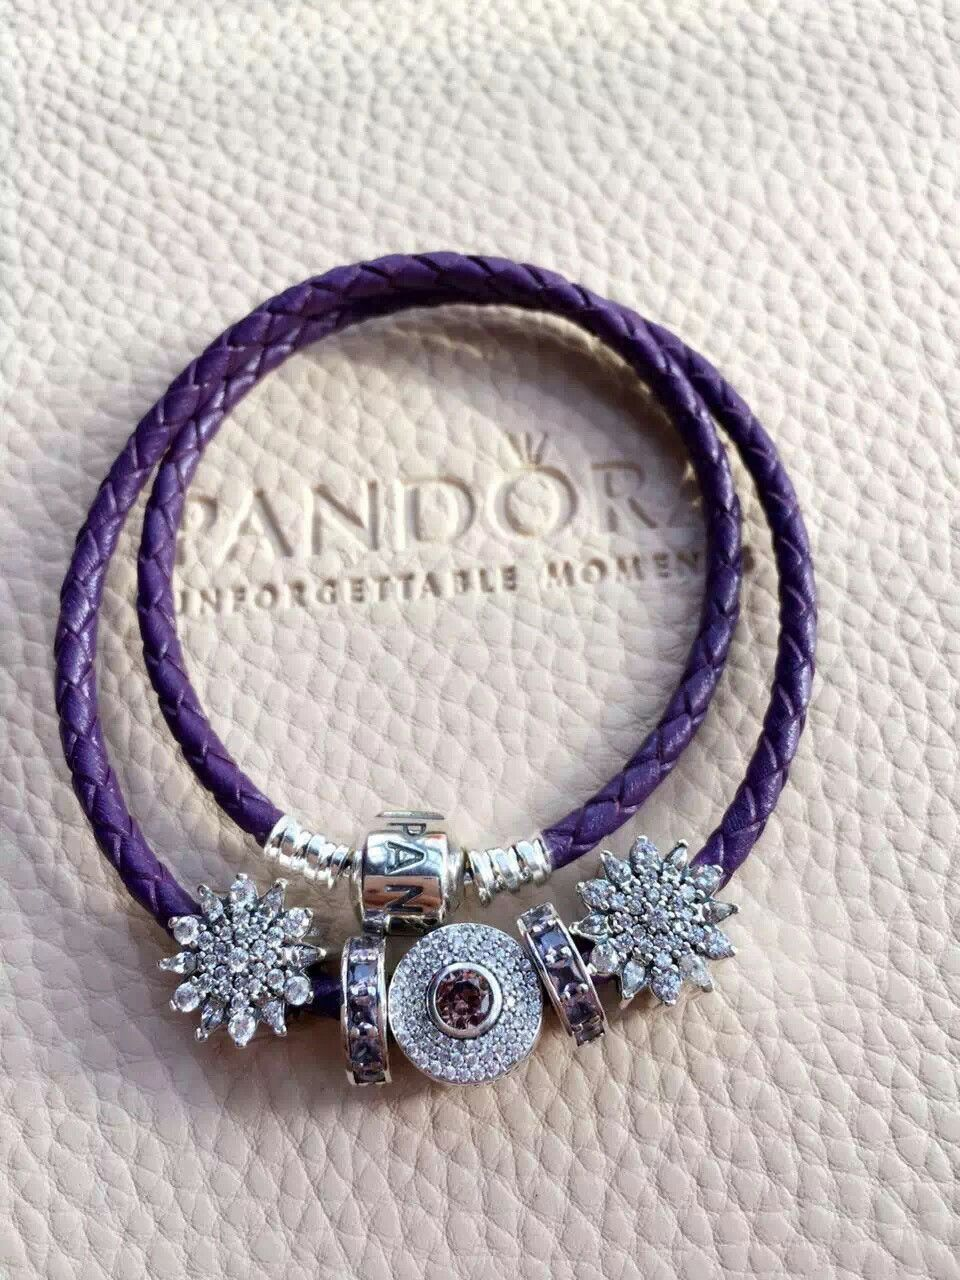 179 Pandora Leather Charm Bracelet Purple Hot Sku Cb02109 Ideas